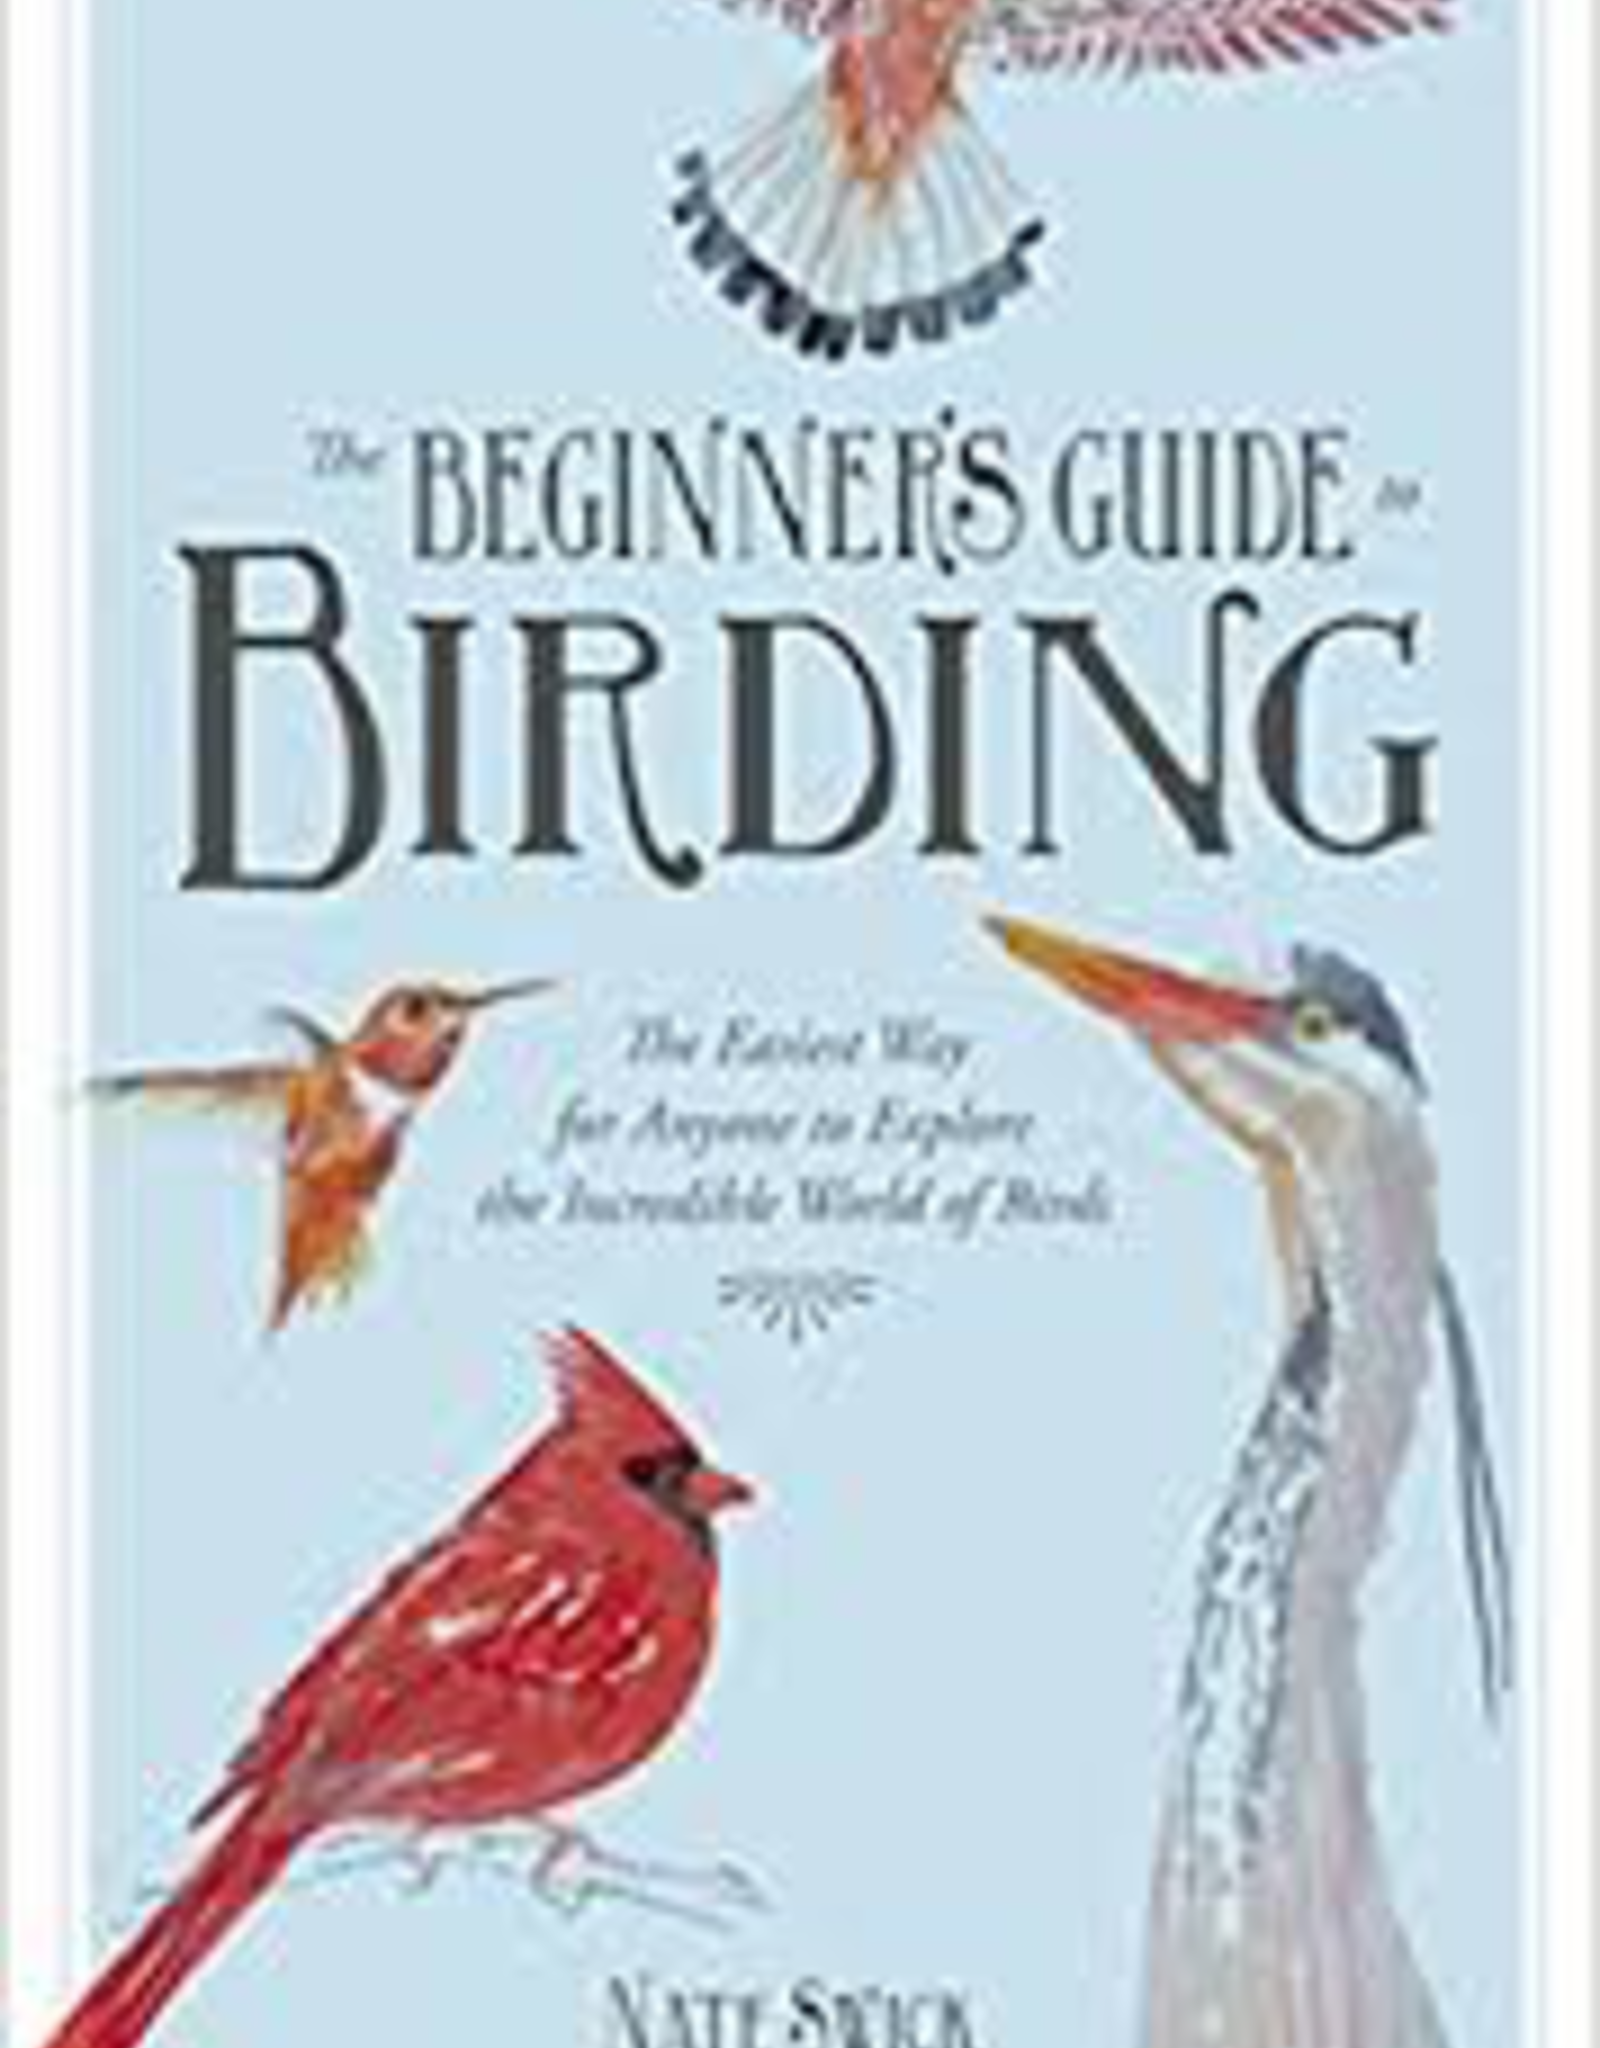 Beginners Guide To Birding